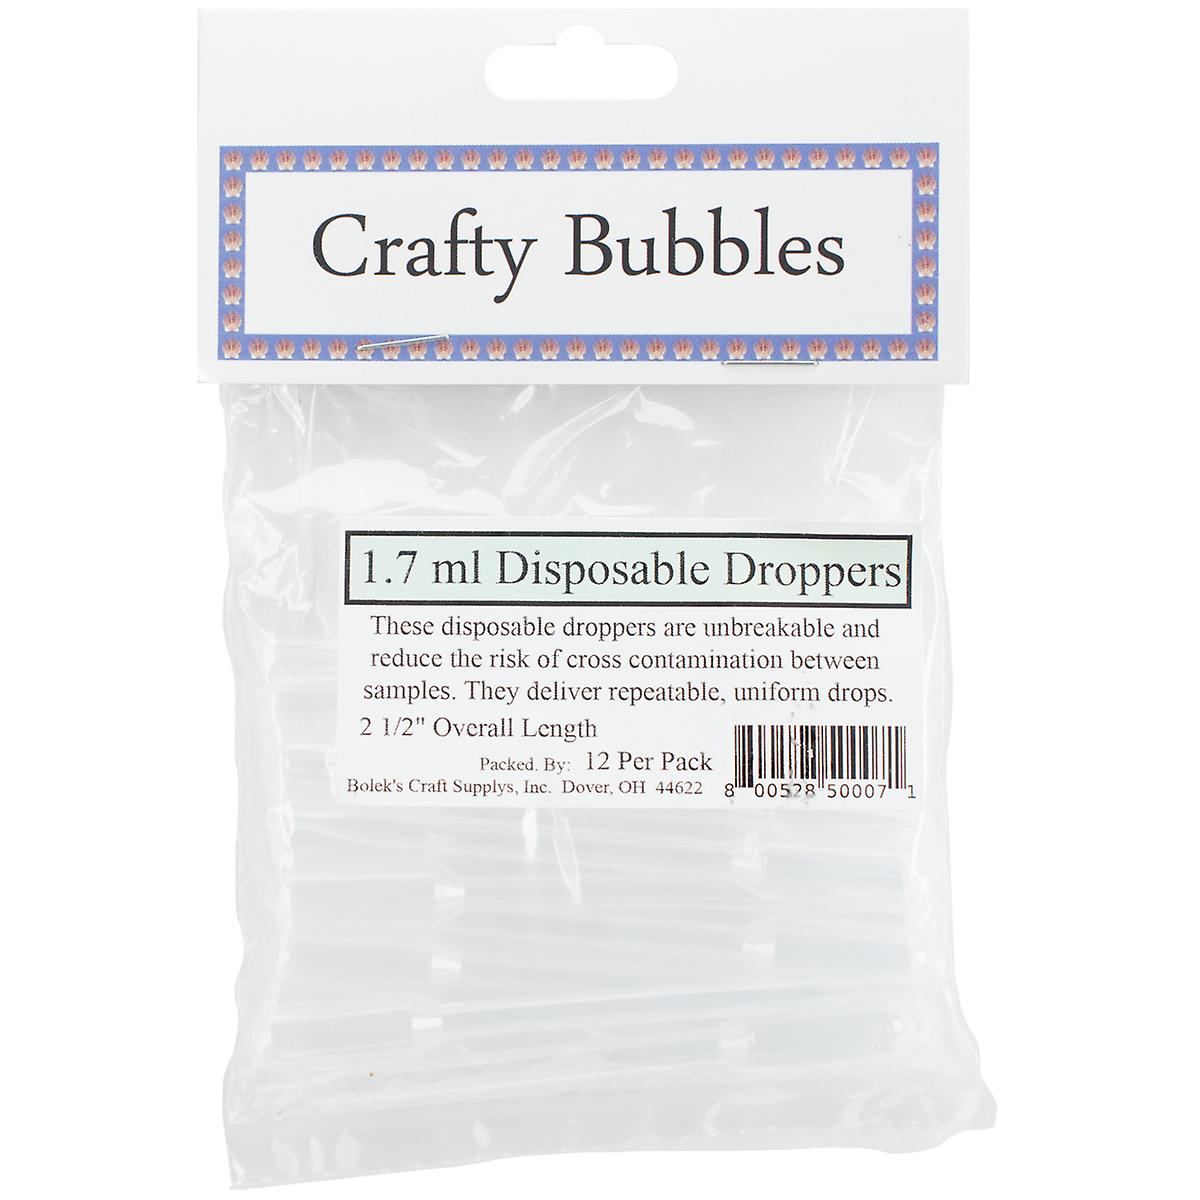 Boleks 33408 1.7 ml. Disposable Droppers - Pack of 12